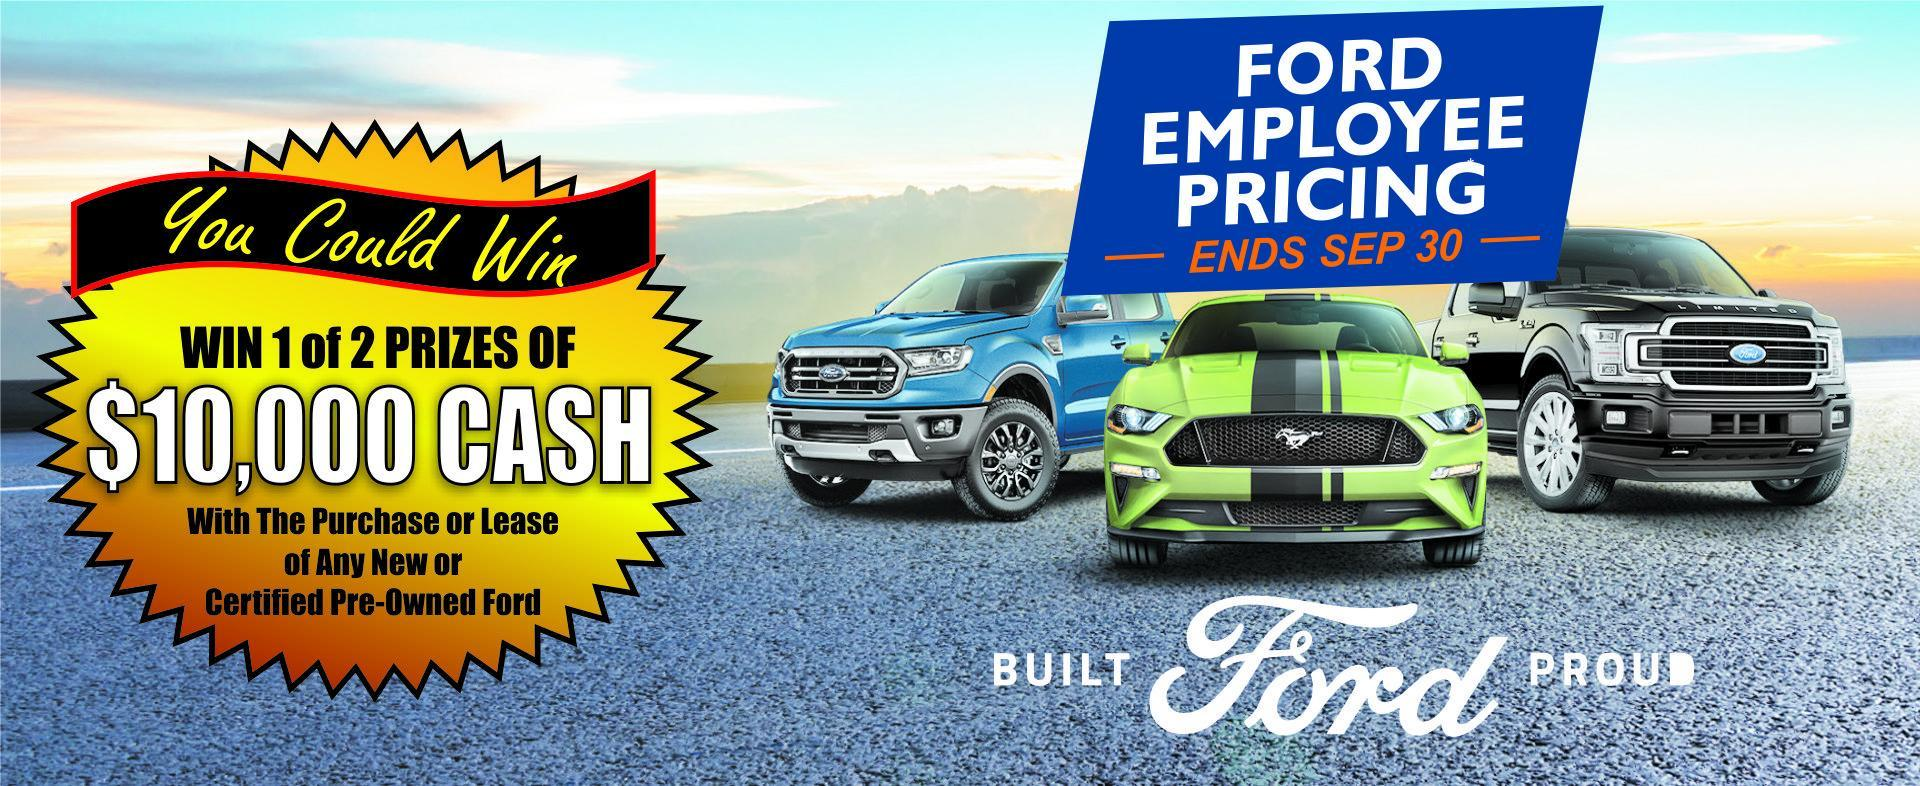 FORD EMPLOYEE PRICING EVENT LACOMBE ALBERTA